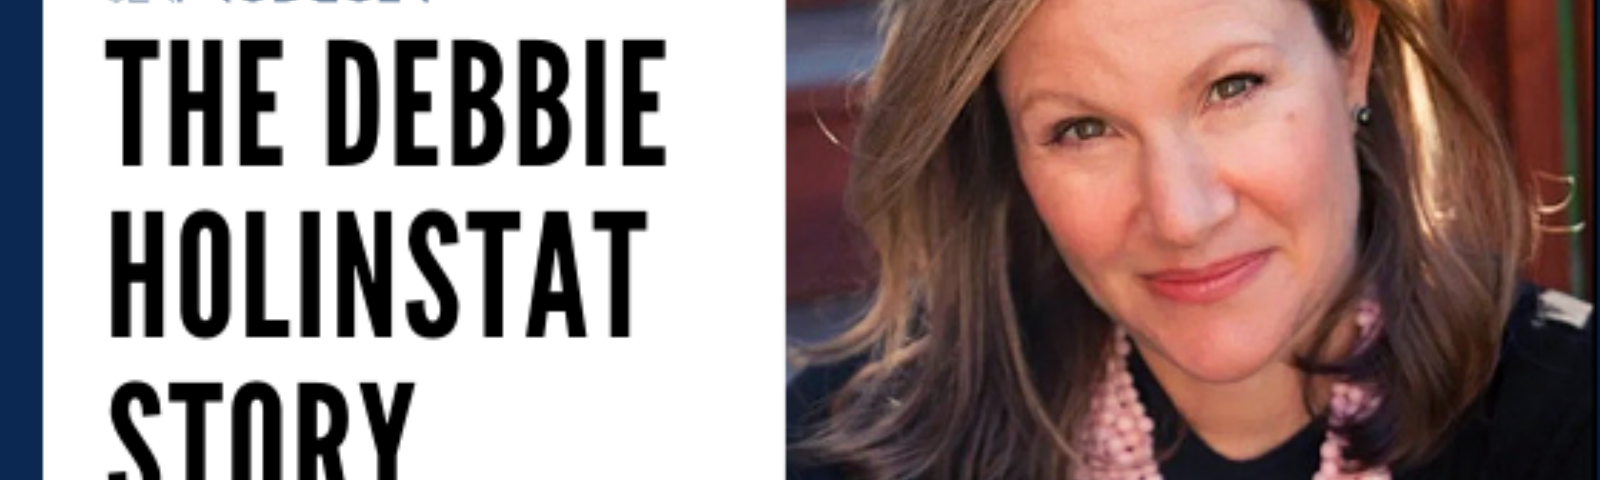 How and Why I Became a TV News Producer: The Debbie Holinstat Story